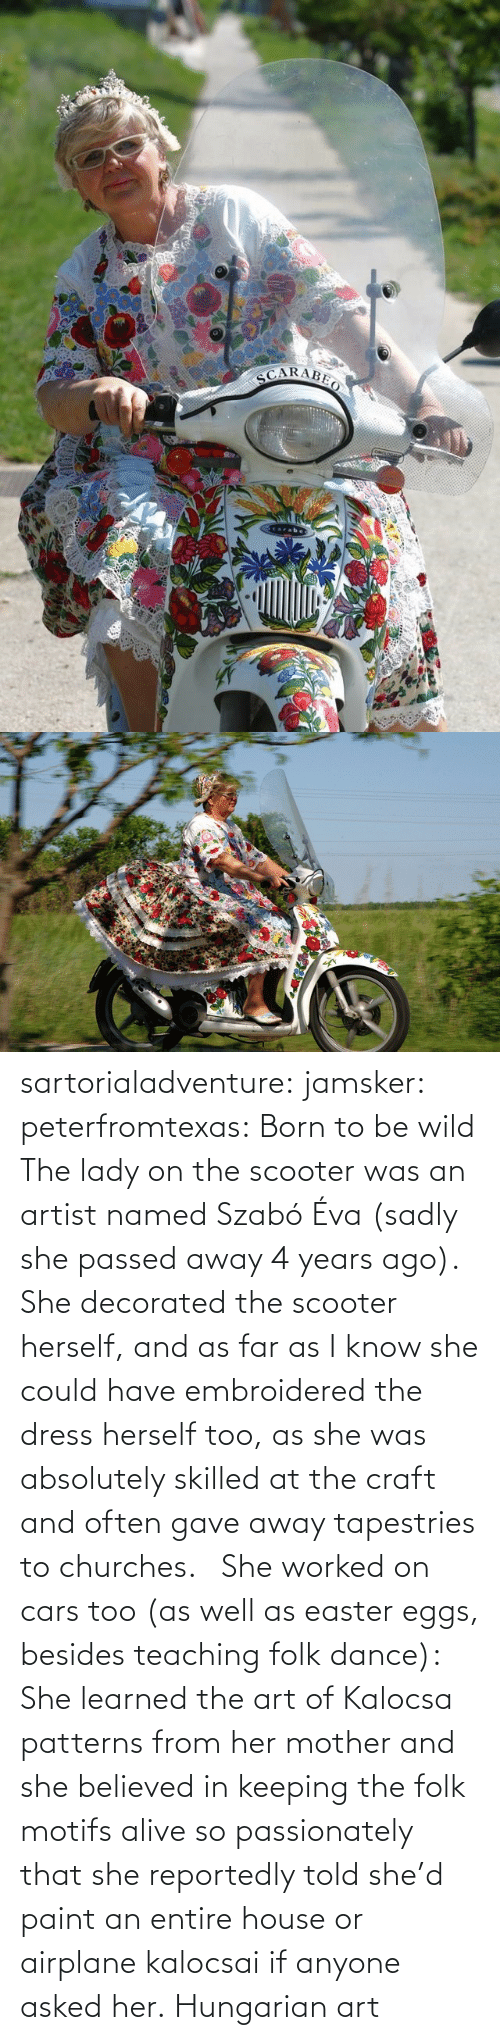 Alive, Cars, and Easter: sartorialadventure: jamsker:  peterfromtexas: Born to be wild The lady on the scooter was an artist named Szabó Éva (sadly she passed away 4 years ago). She decorated the scooter herself, and as far as I know she could have embroidered the dress herself too, as she was absolutely skilled at the craft and often gave away tapestries to churches.   She worked on cars too (as well as easter eggs, besides teaching folk dance): She learned the art of Kalocsa patterns from her mother and she believed in keeping the folk motifs alive so passionately that she reportedly told she'd paint an entire house or airplane kalocsai if anyone asked her.  Hungarian art